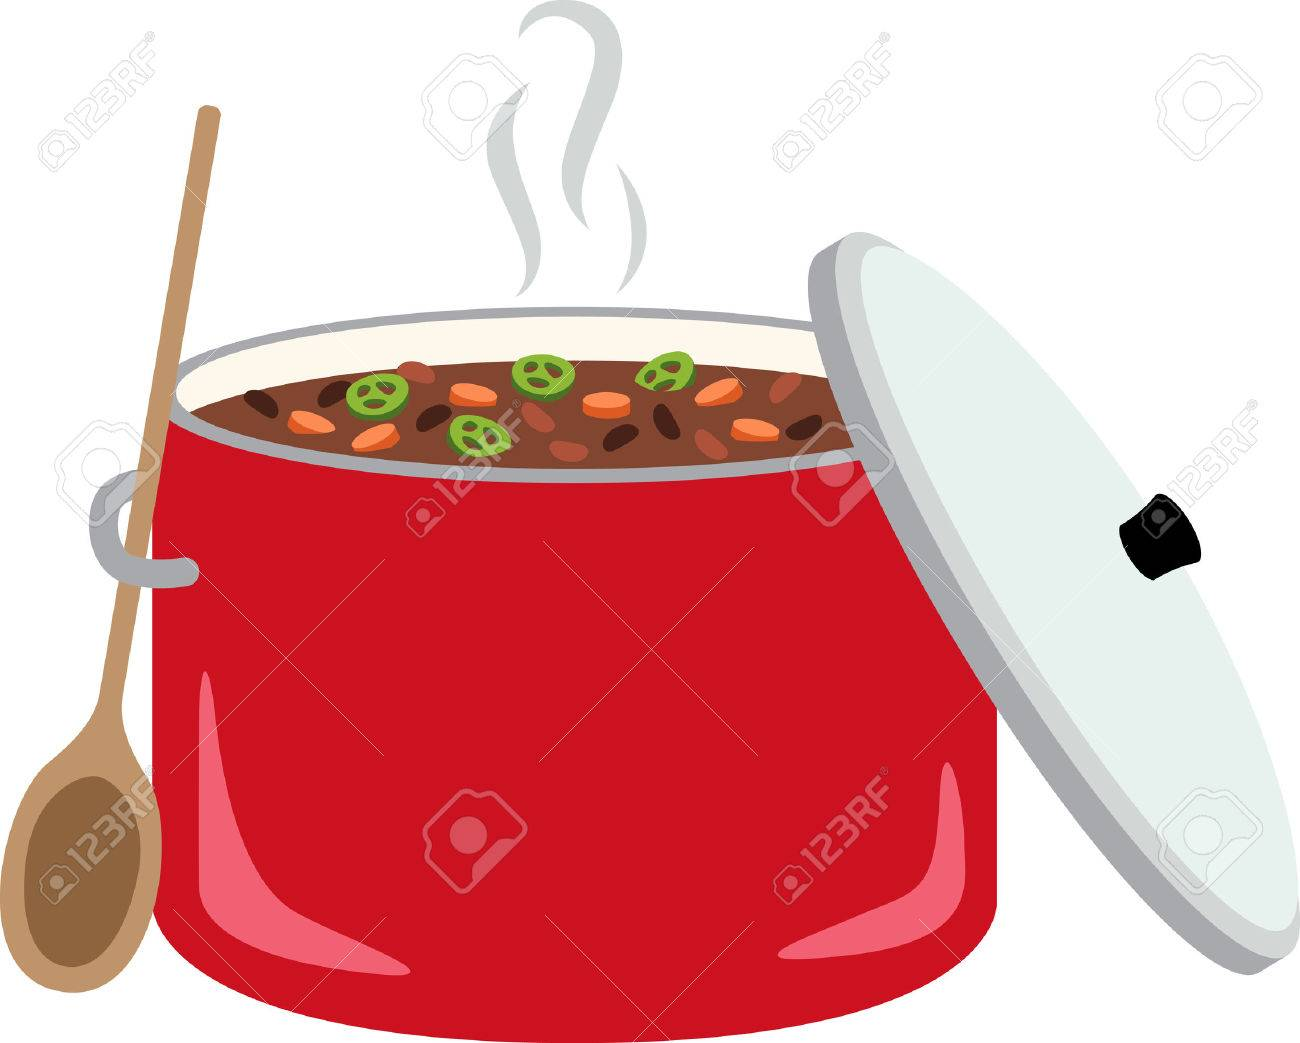 A bowlful of steamy hot chili is simple, hearty, and feeds the...